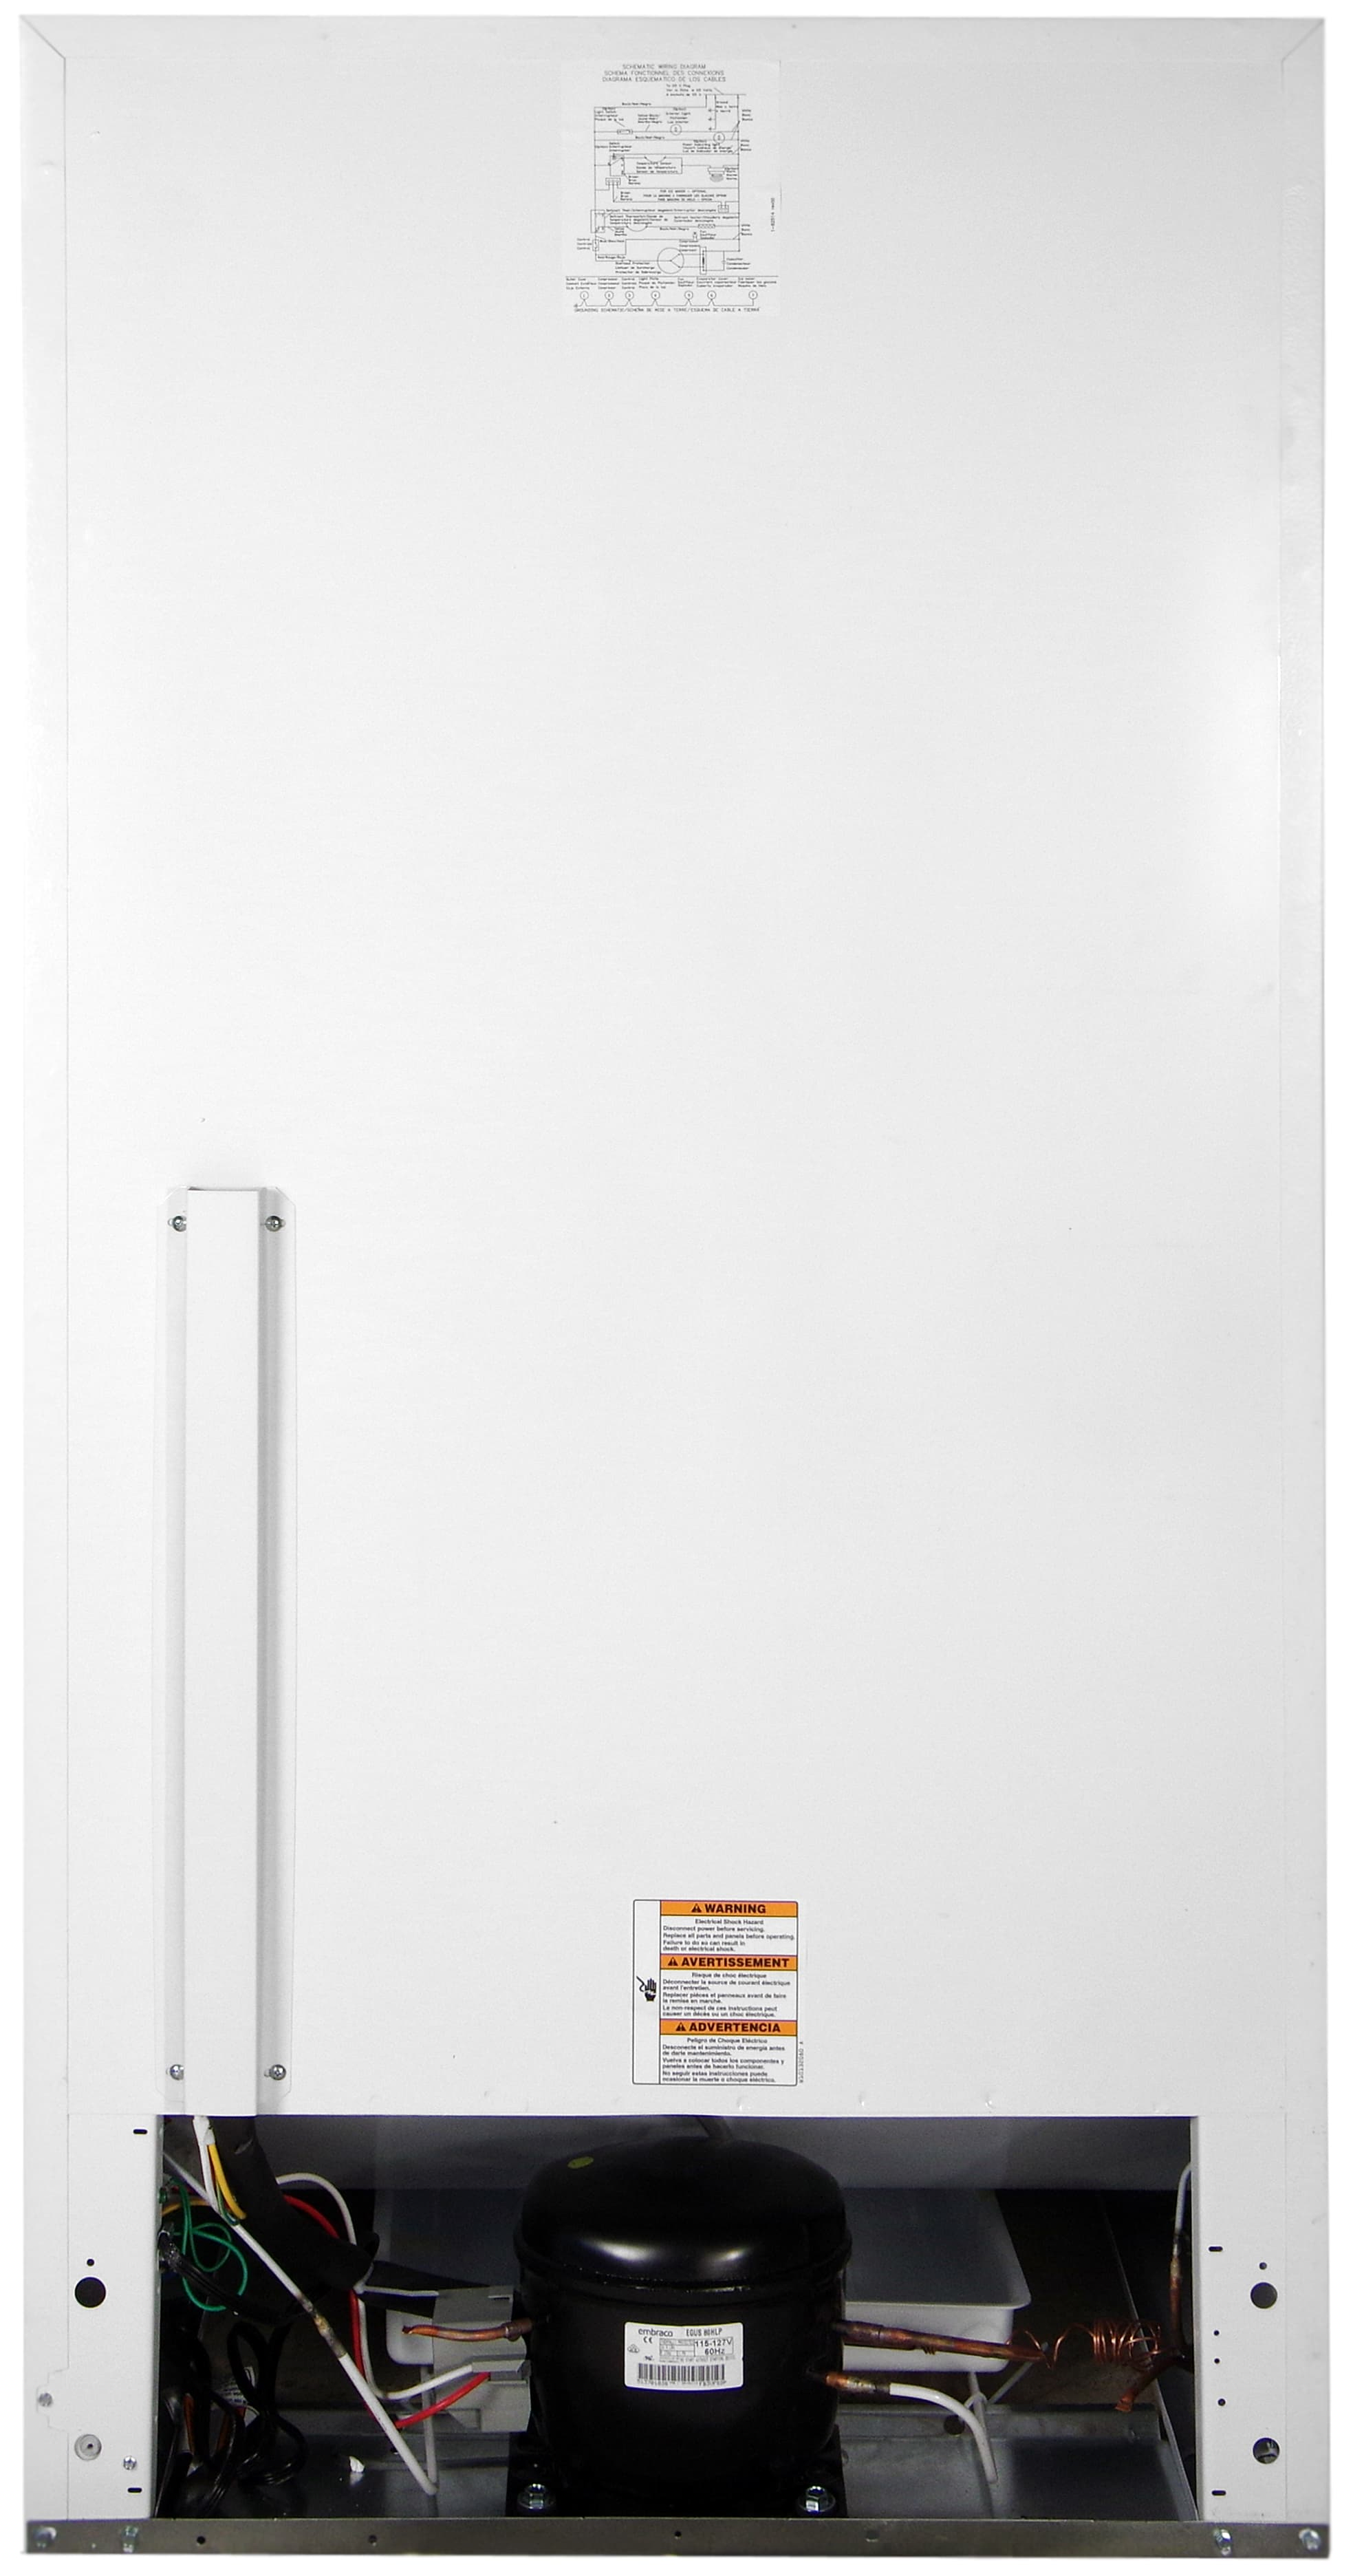 The inner workings of the Whirlpool EV160NZTQ freezer are exposed at the bottom.